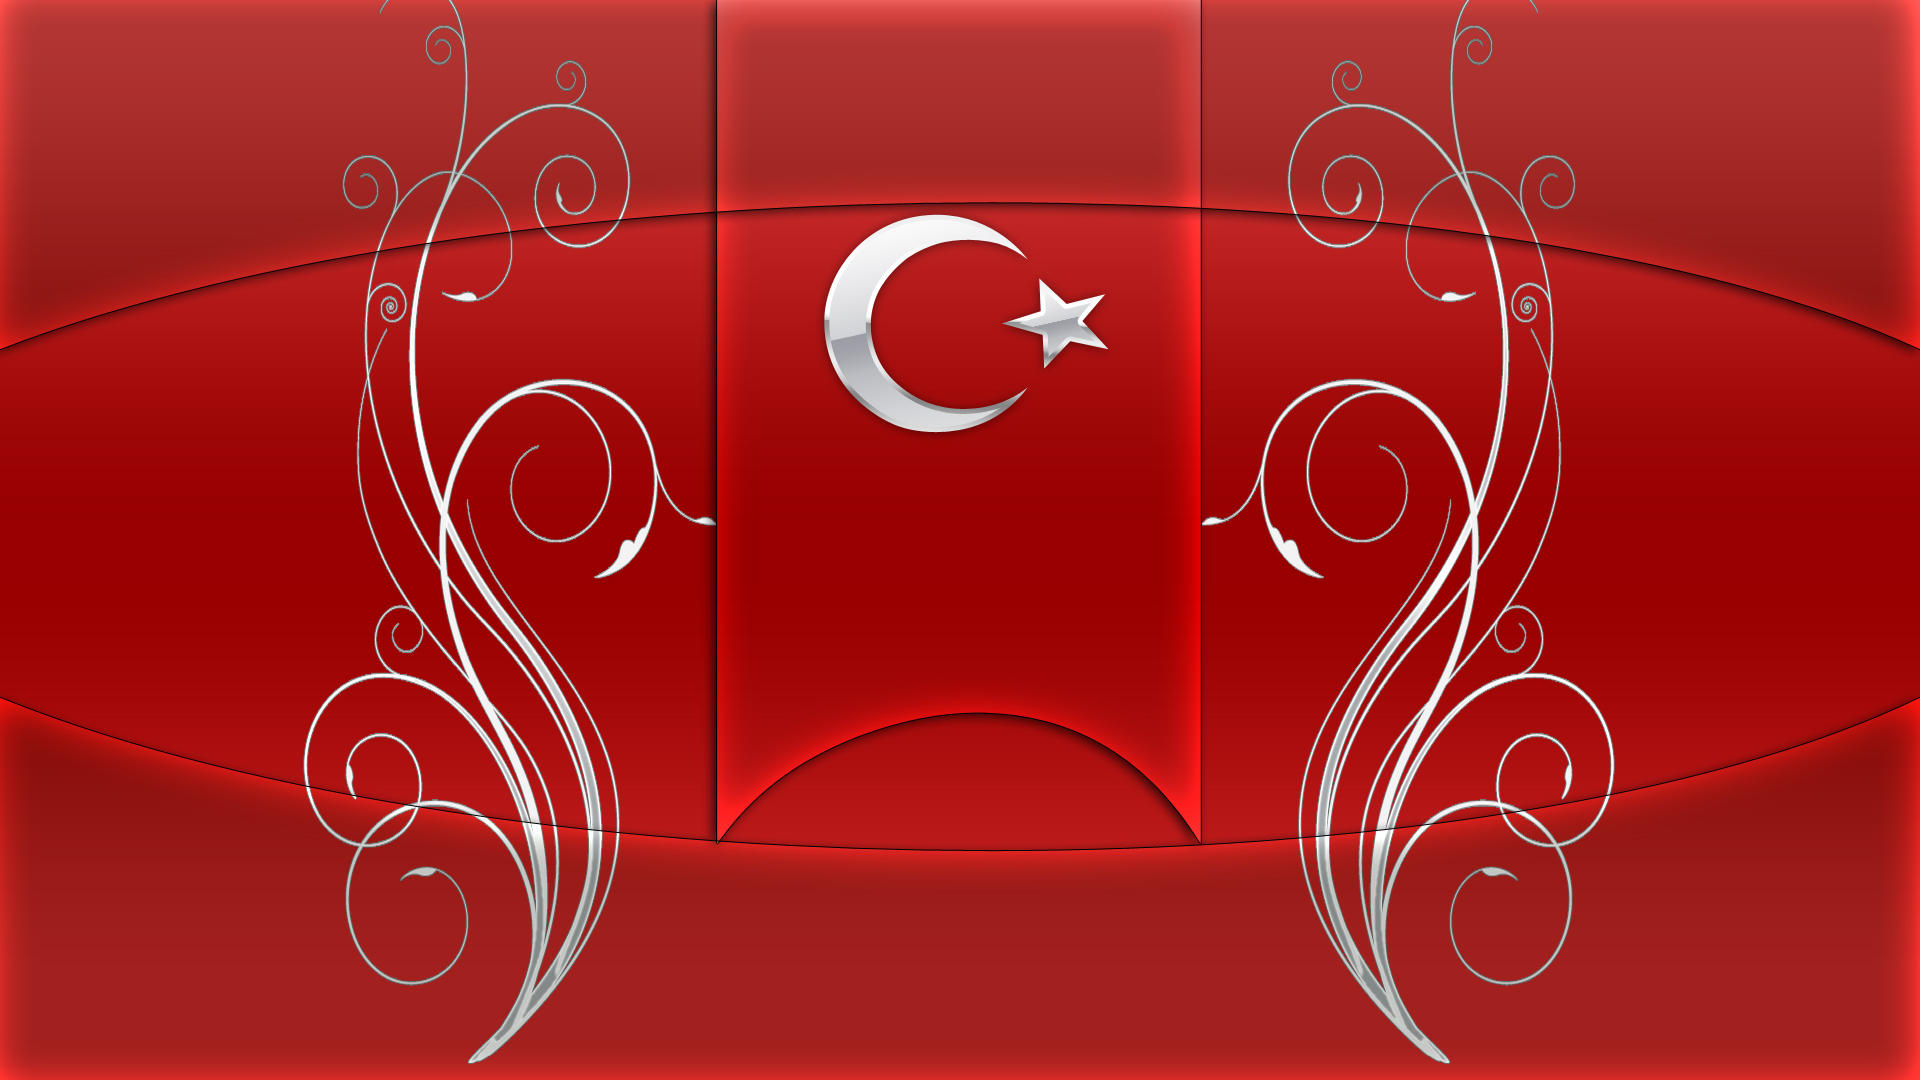 turkiye_logon_wallpaper_by_gecebilgisayar-d3jth6d.jpg